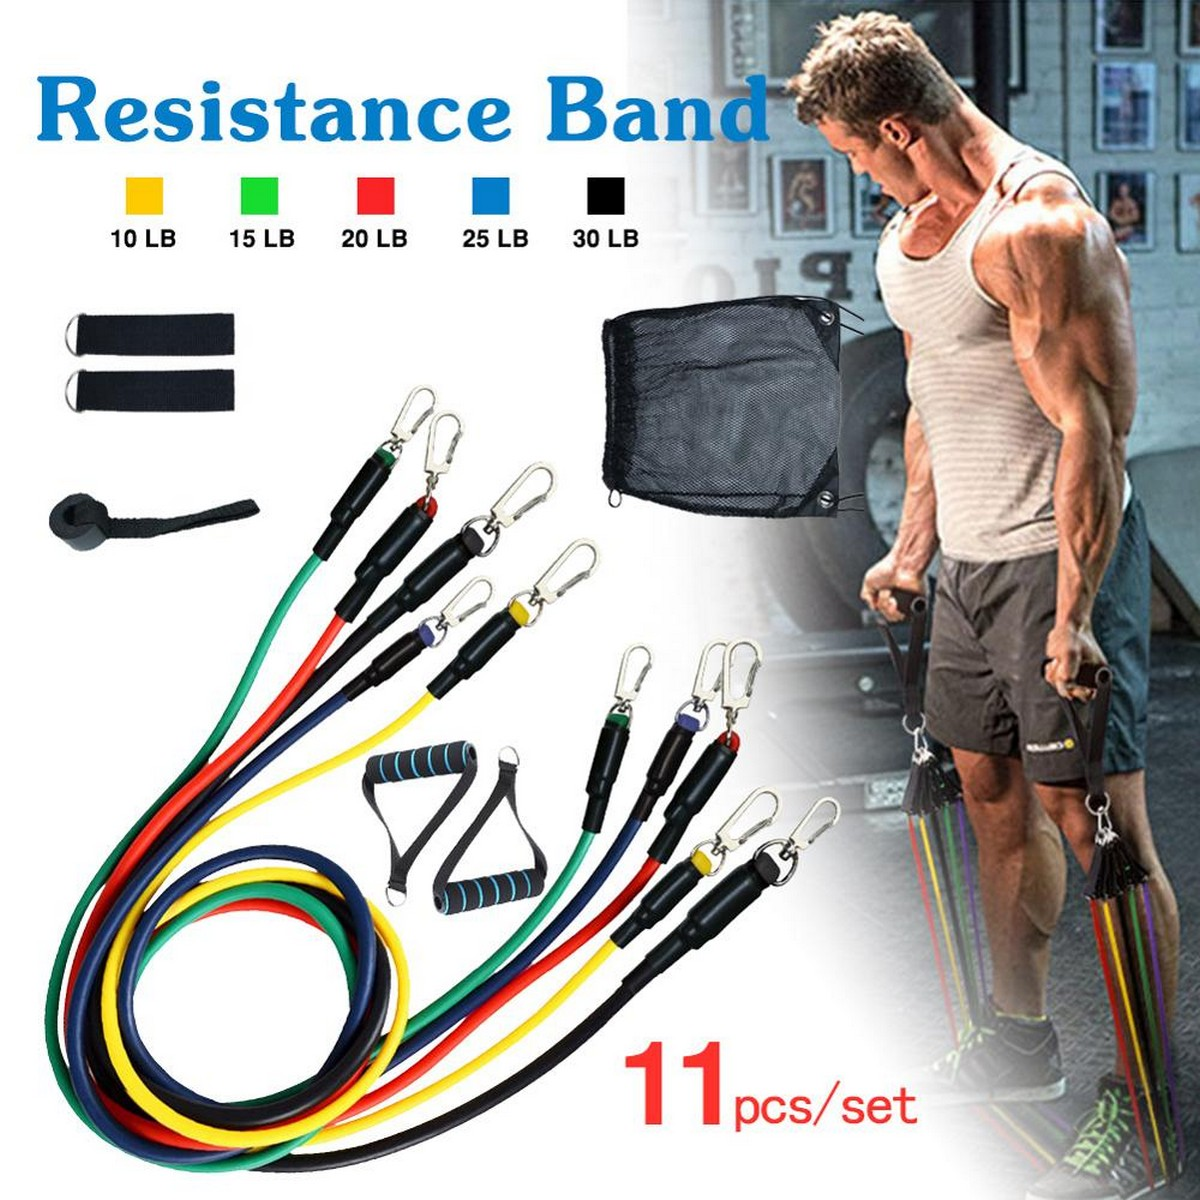 11 PCS Latex Resistance Band Set Yoga Pilates Abs Exercise Fitness Gym Workout Set With Elastic Tube, Door Anchor, Ankle Straps, And Handles For Weight Loss Or Stretch